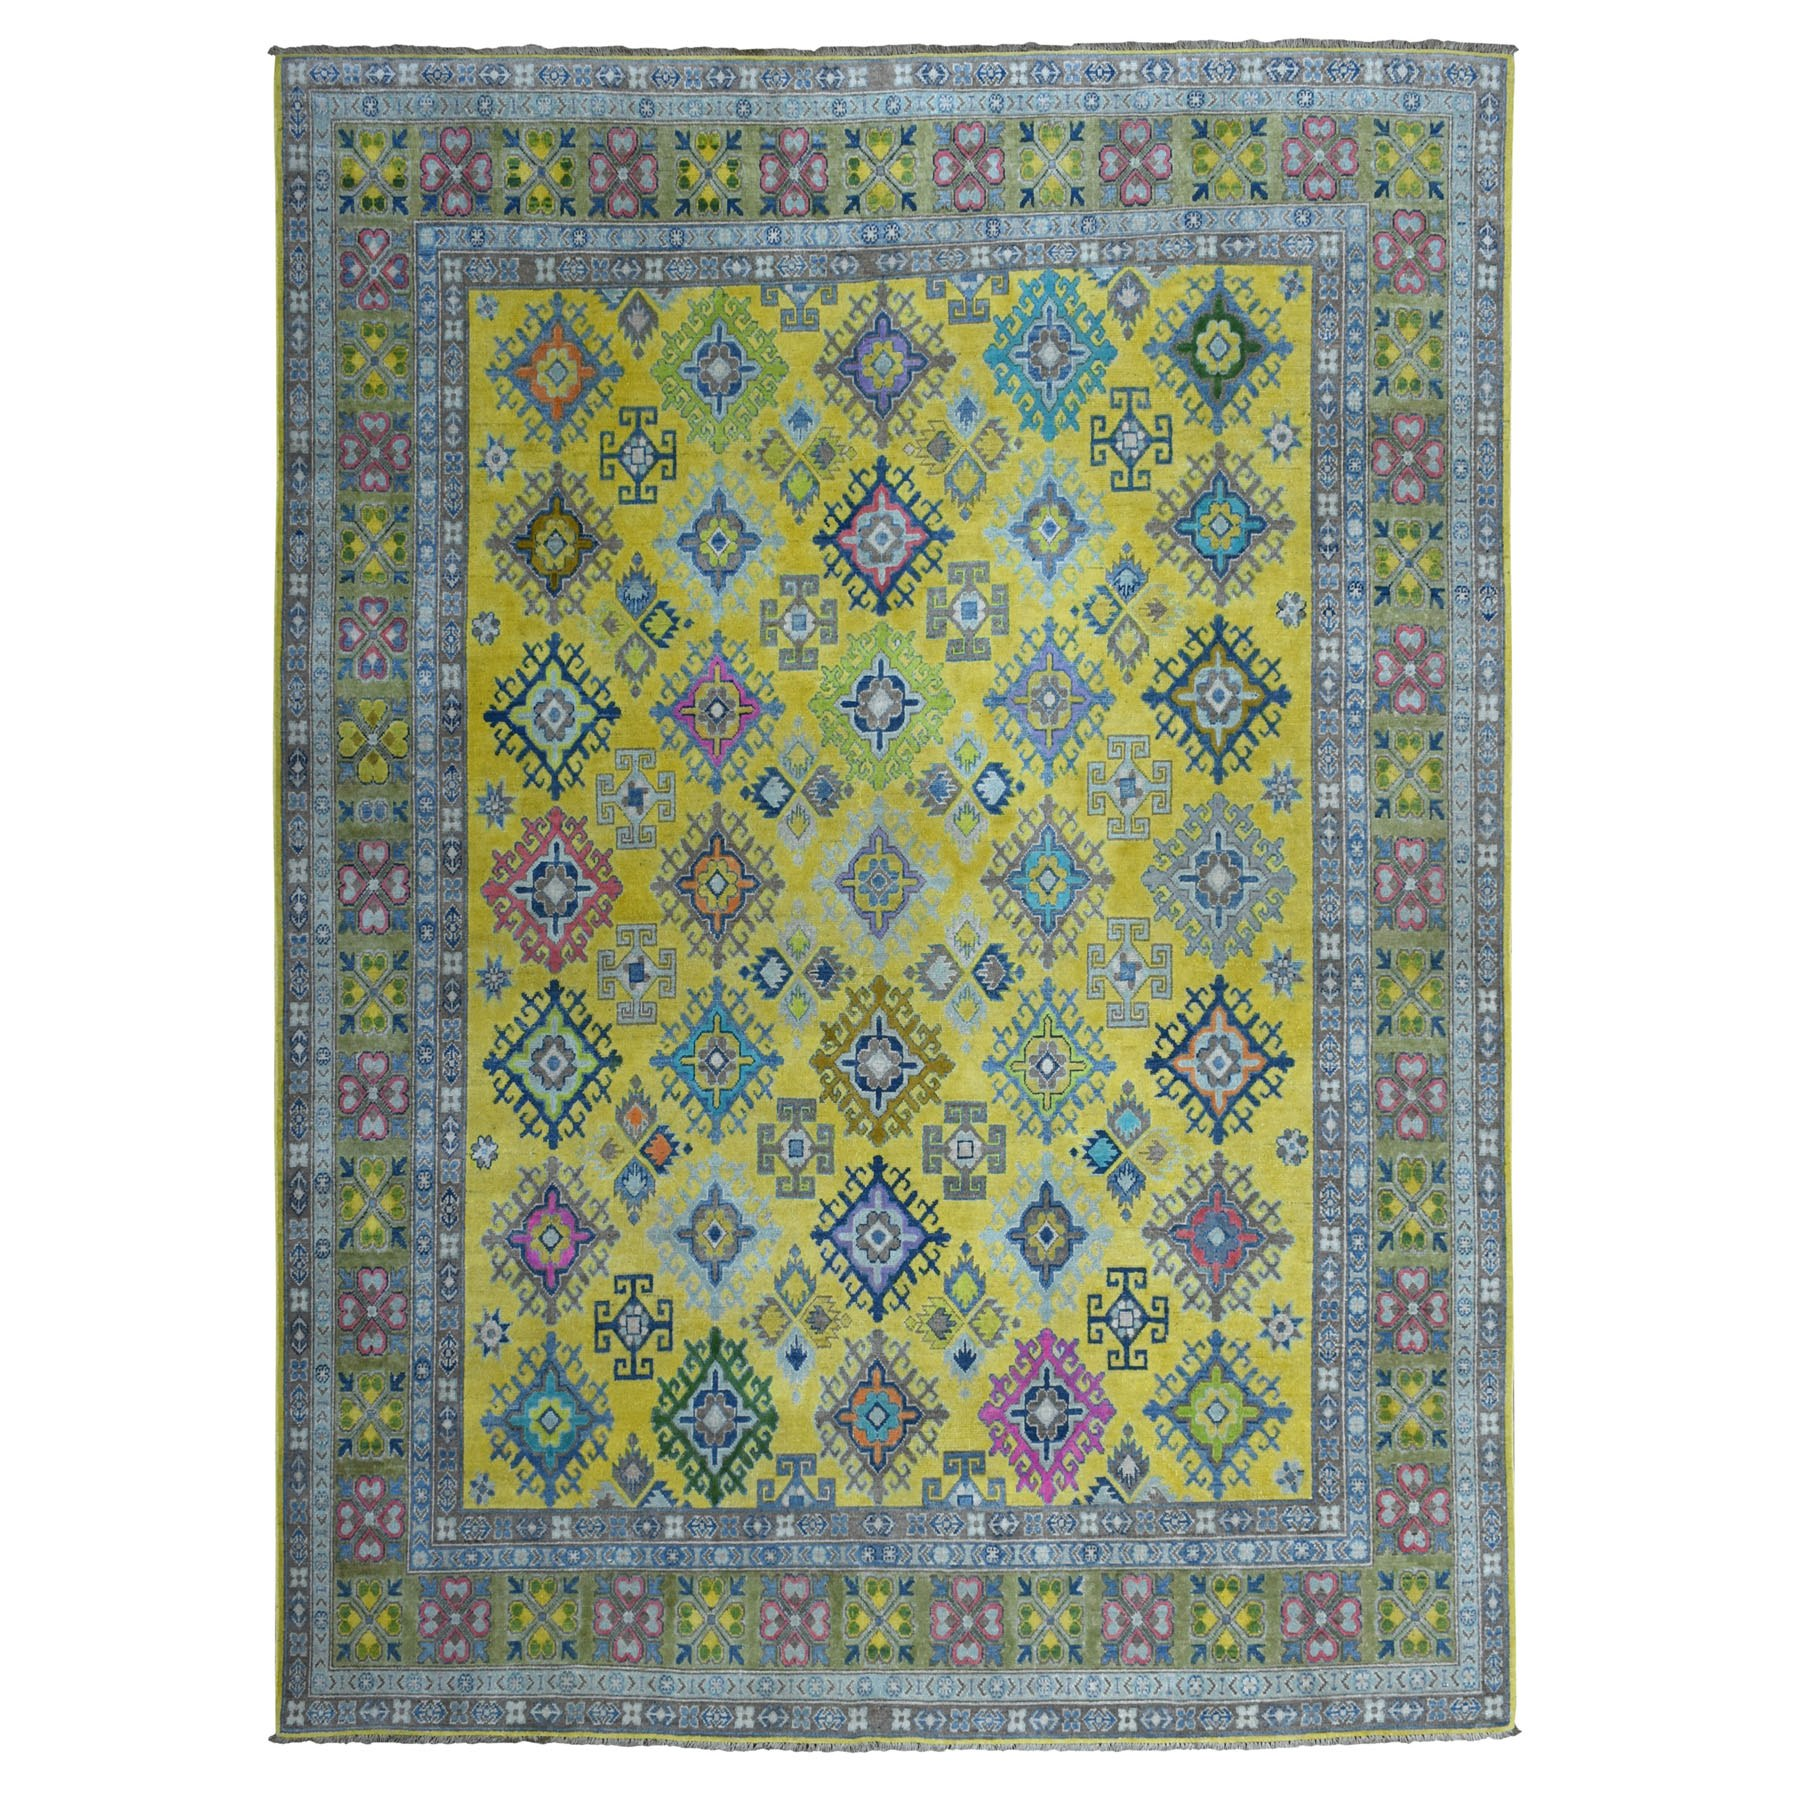 8'X10' Colorful Yellow Fusion Kazak Pure Wool Geometric Design Hand Knotted Oriental Rug moaebae0